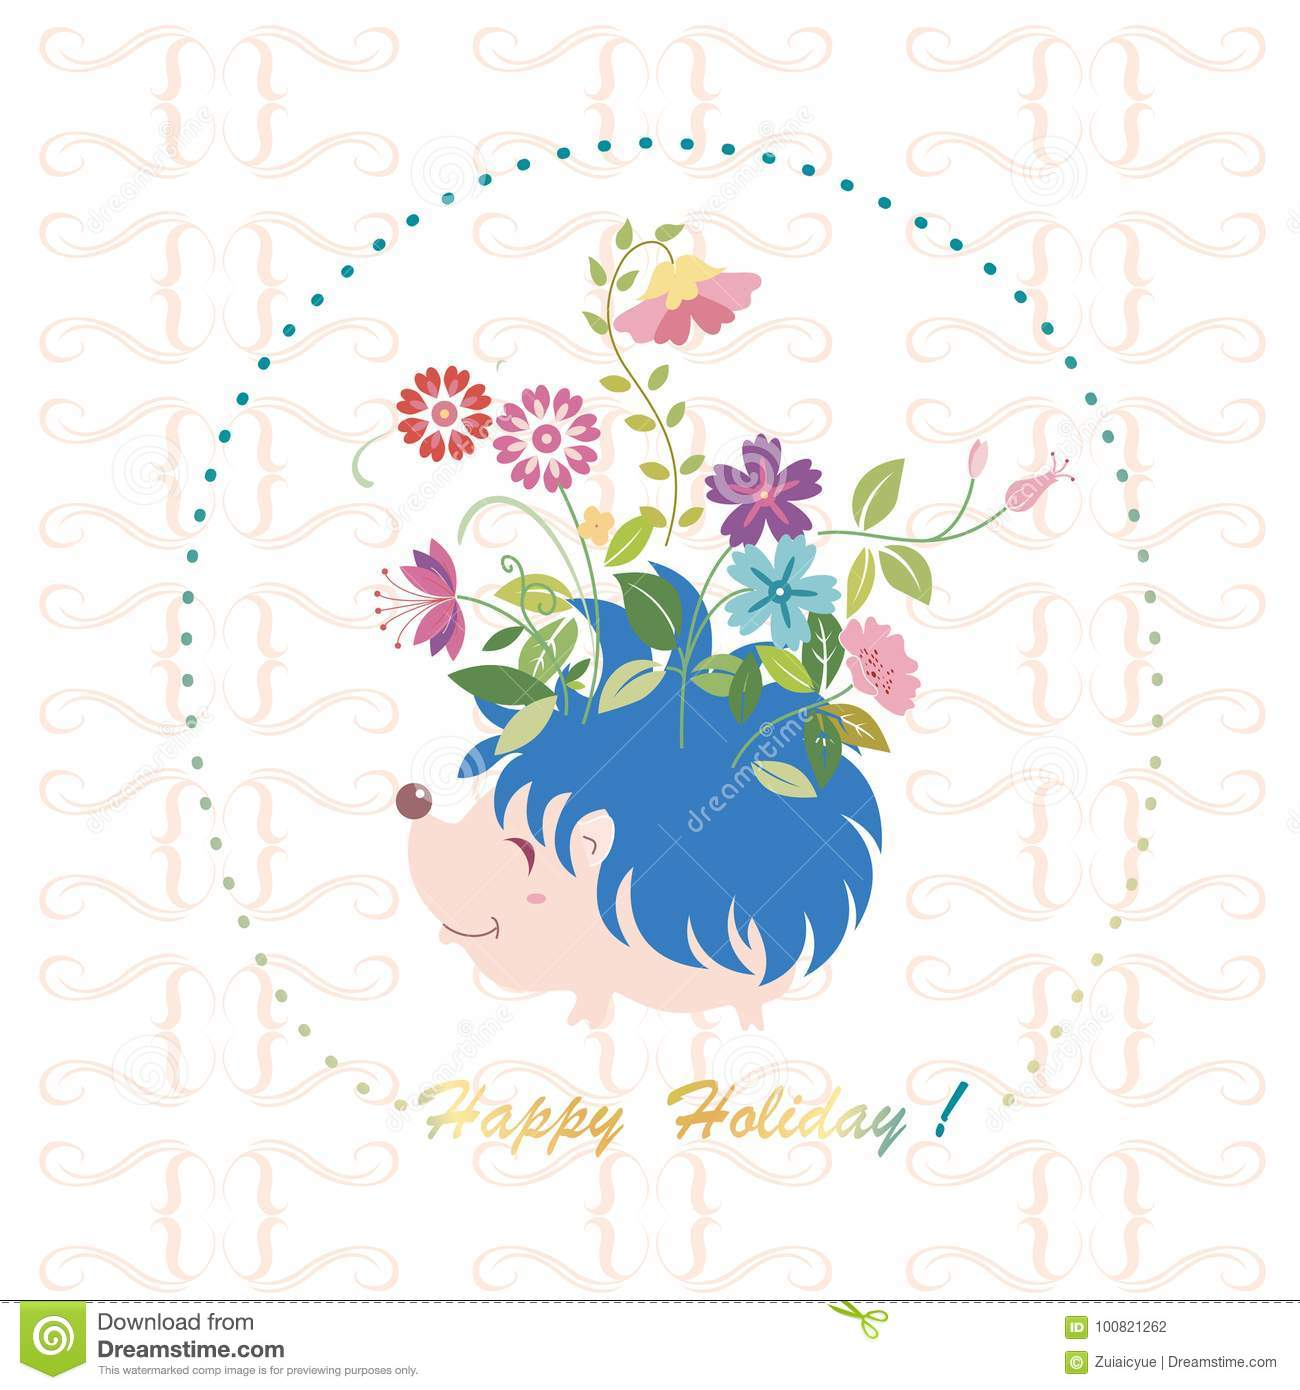 Cute Holiday Greeting Cards Stock Vector Illustration Of Animal